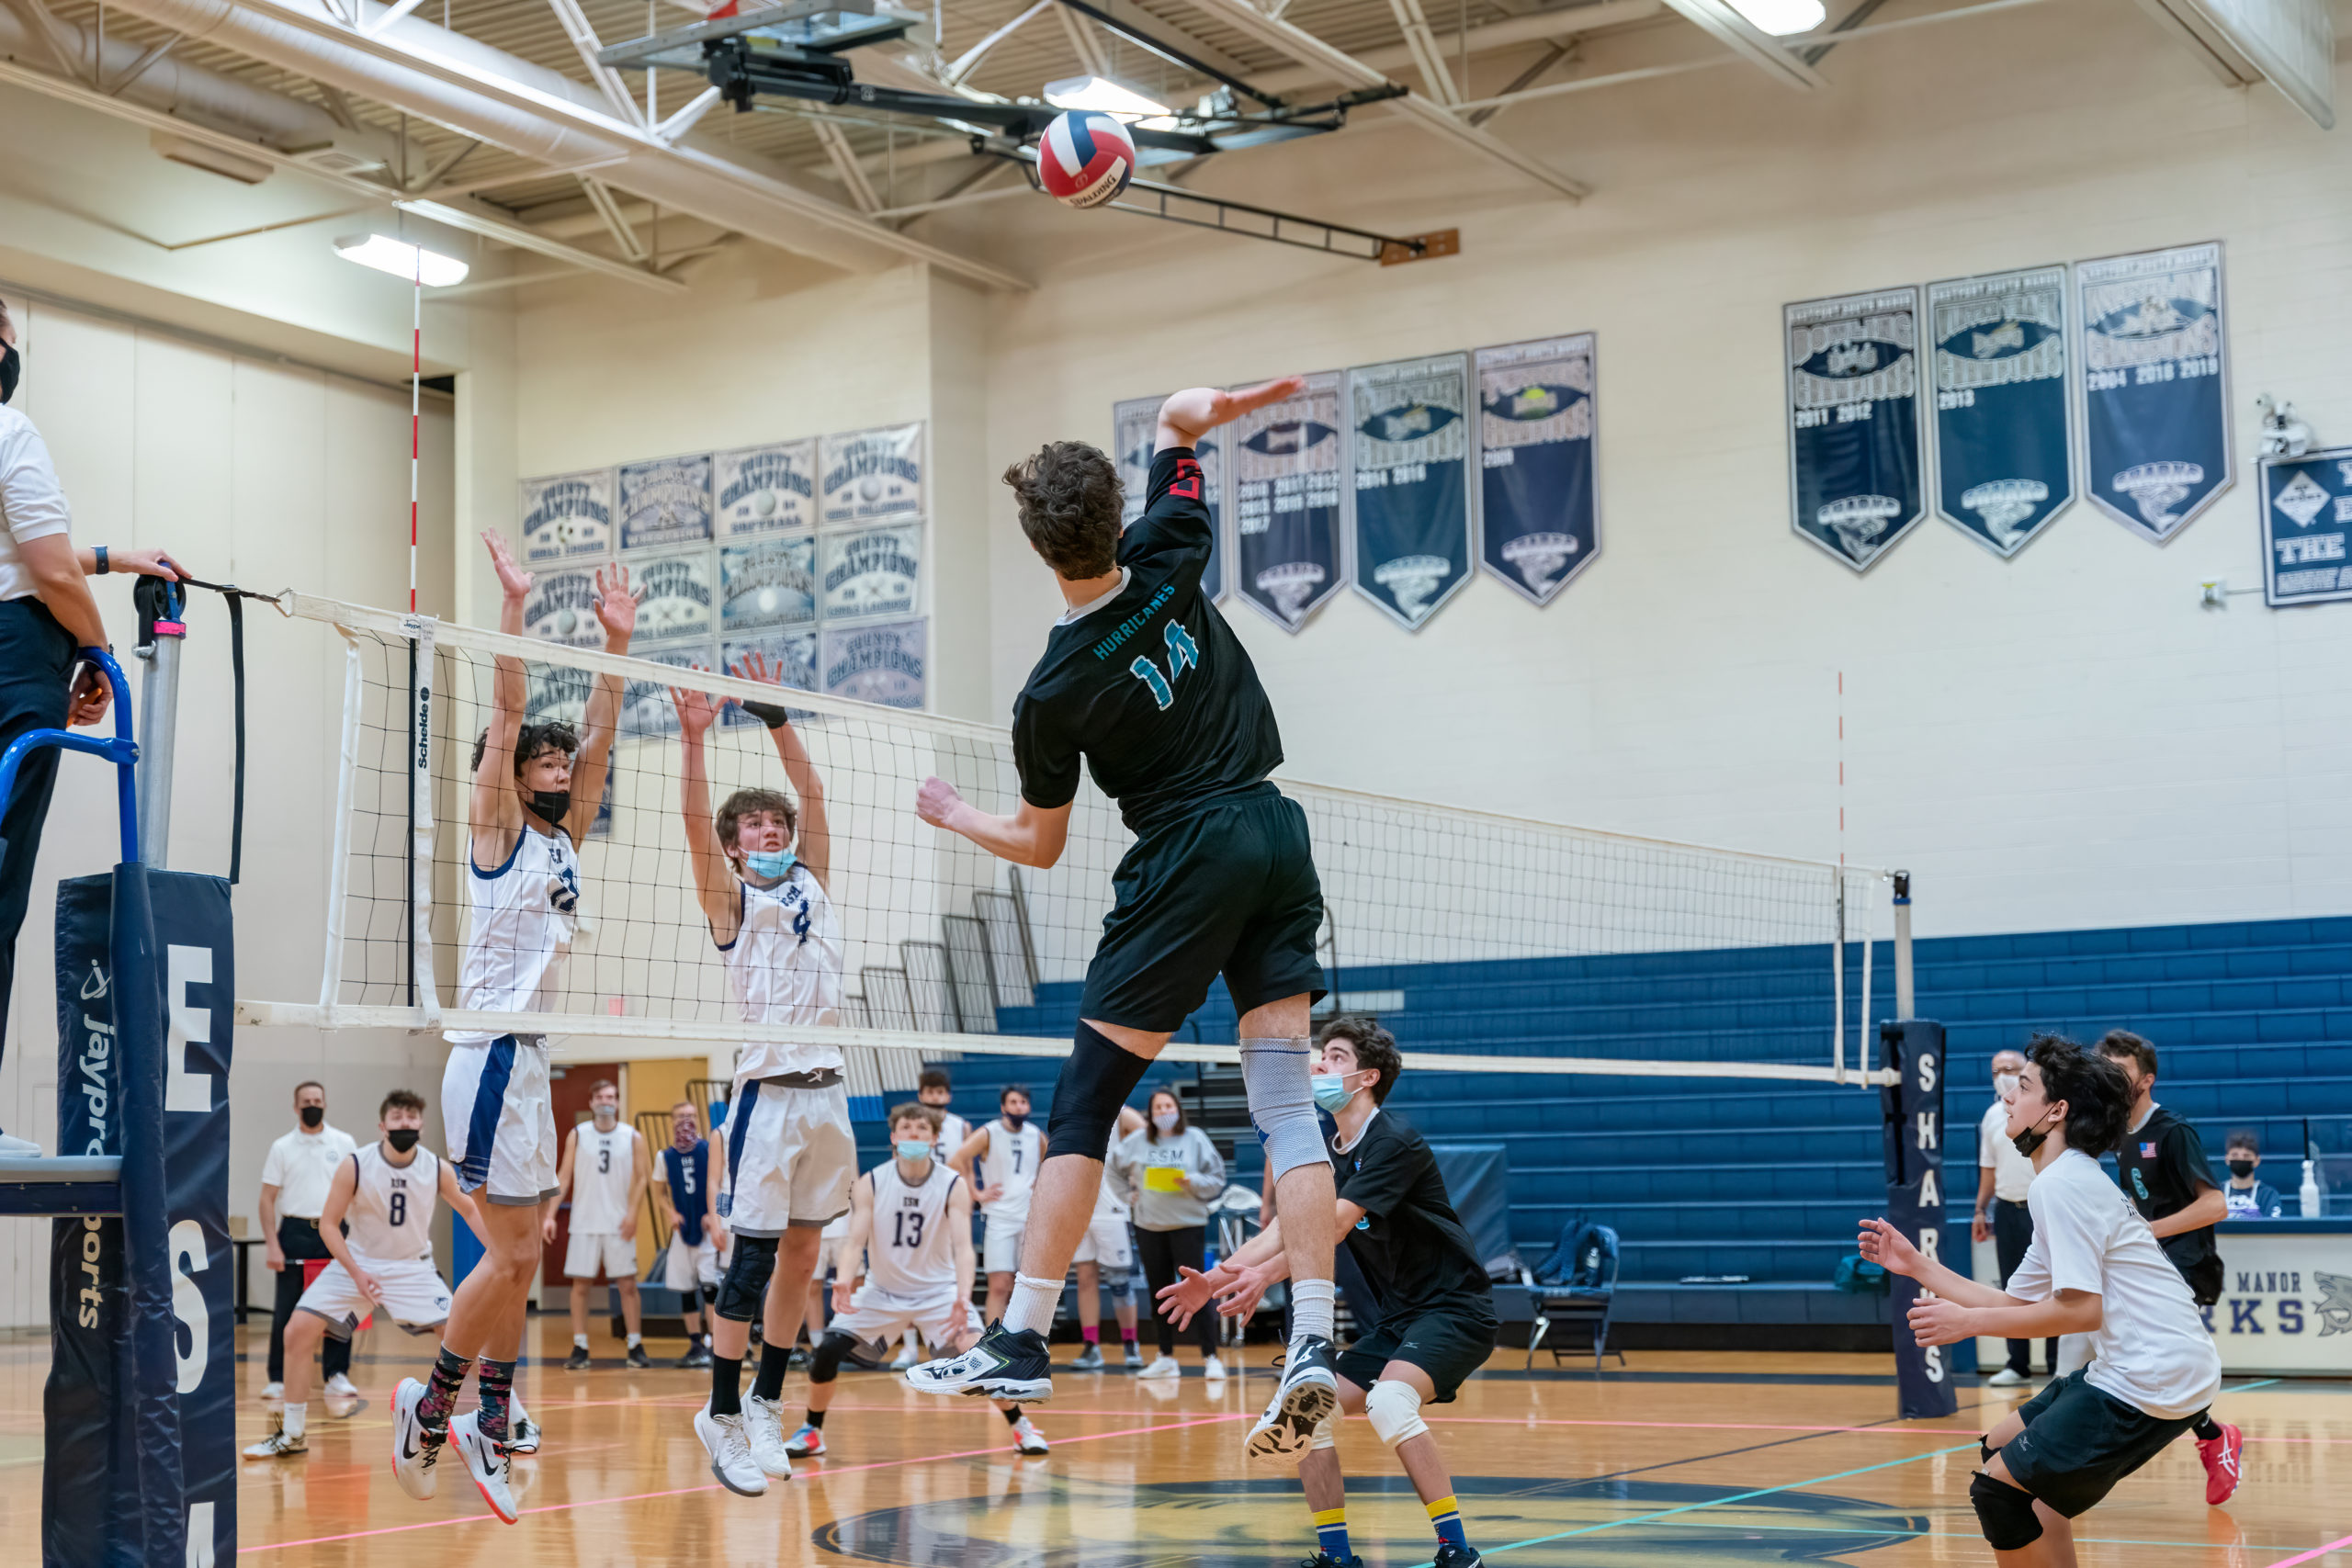 Daniel Haber of Westhampton Beach gets set to attempt a kill.